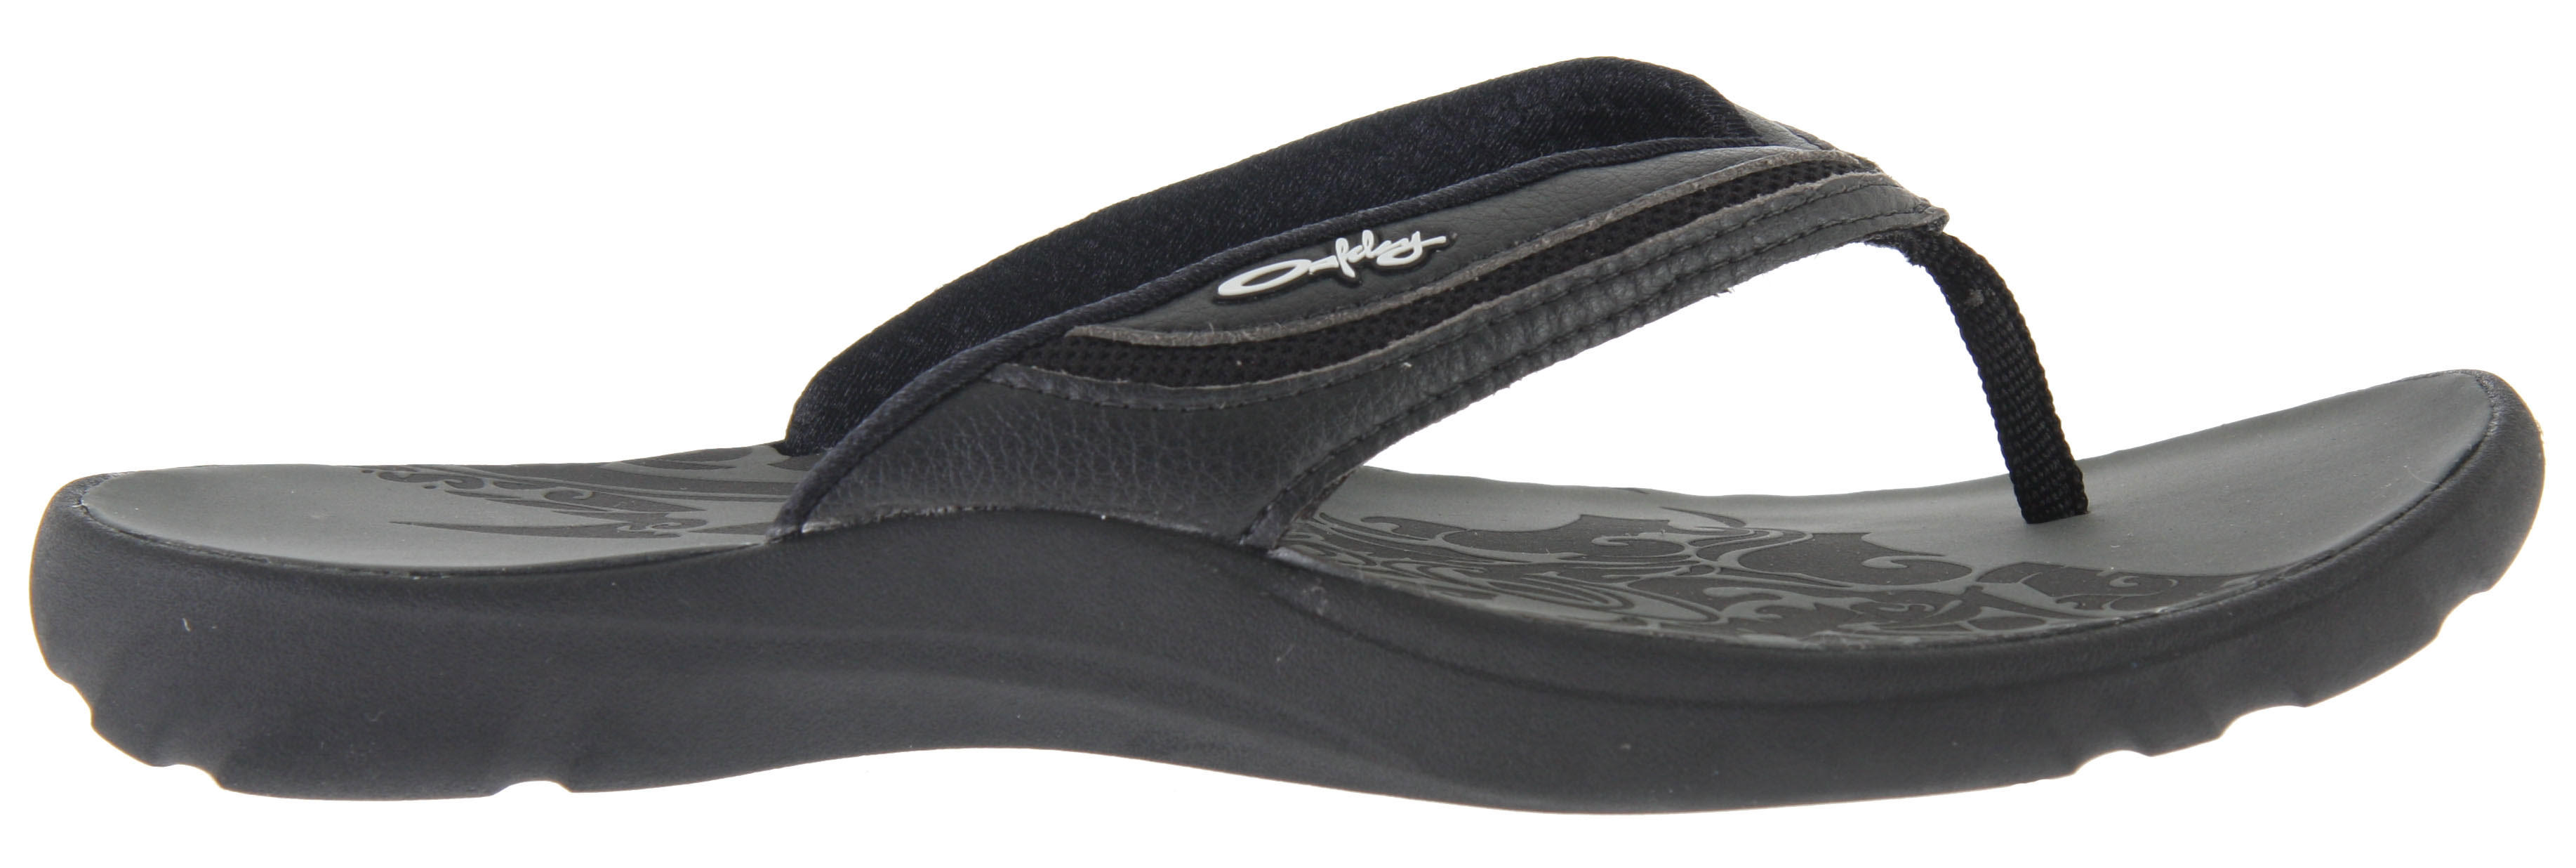 Surf Oakley's original LOWLA sandal design has been a beach beauty favorite and a casual enticer for ladies looking for laid-back allure. LOWLA 3 brings it to a whole new place of style. Just look at the art on the synthetic leather straps, and the fresh accents we crafted with neoprene insets. Inner beauty is a secret of this design, and it comes with the comfort of EVA shock absorption and RED CODE technology that returns energy with every step. This sandal even includes Microban to fight those nasty little microbes that cause odor, so go play hard.Key Features of the Oakley Lowia 3 Sandals: Synthetic leather strap with neoprene insets and soft nylon webbing post Neoprene with textile lining enhanced with Microban antimicrobial treatment to reduce odor Resilient EVA shock absorption RED CODE technology for dynamic shock attenuation, stability and energy return Ergonomically molded foot deck with laser treatment Traction of rubber sole - $39.95